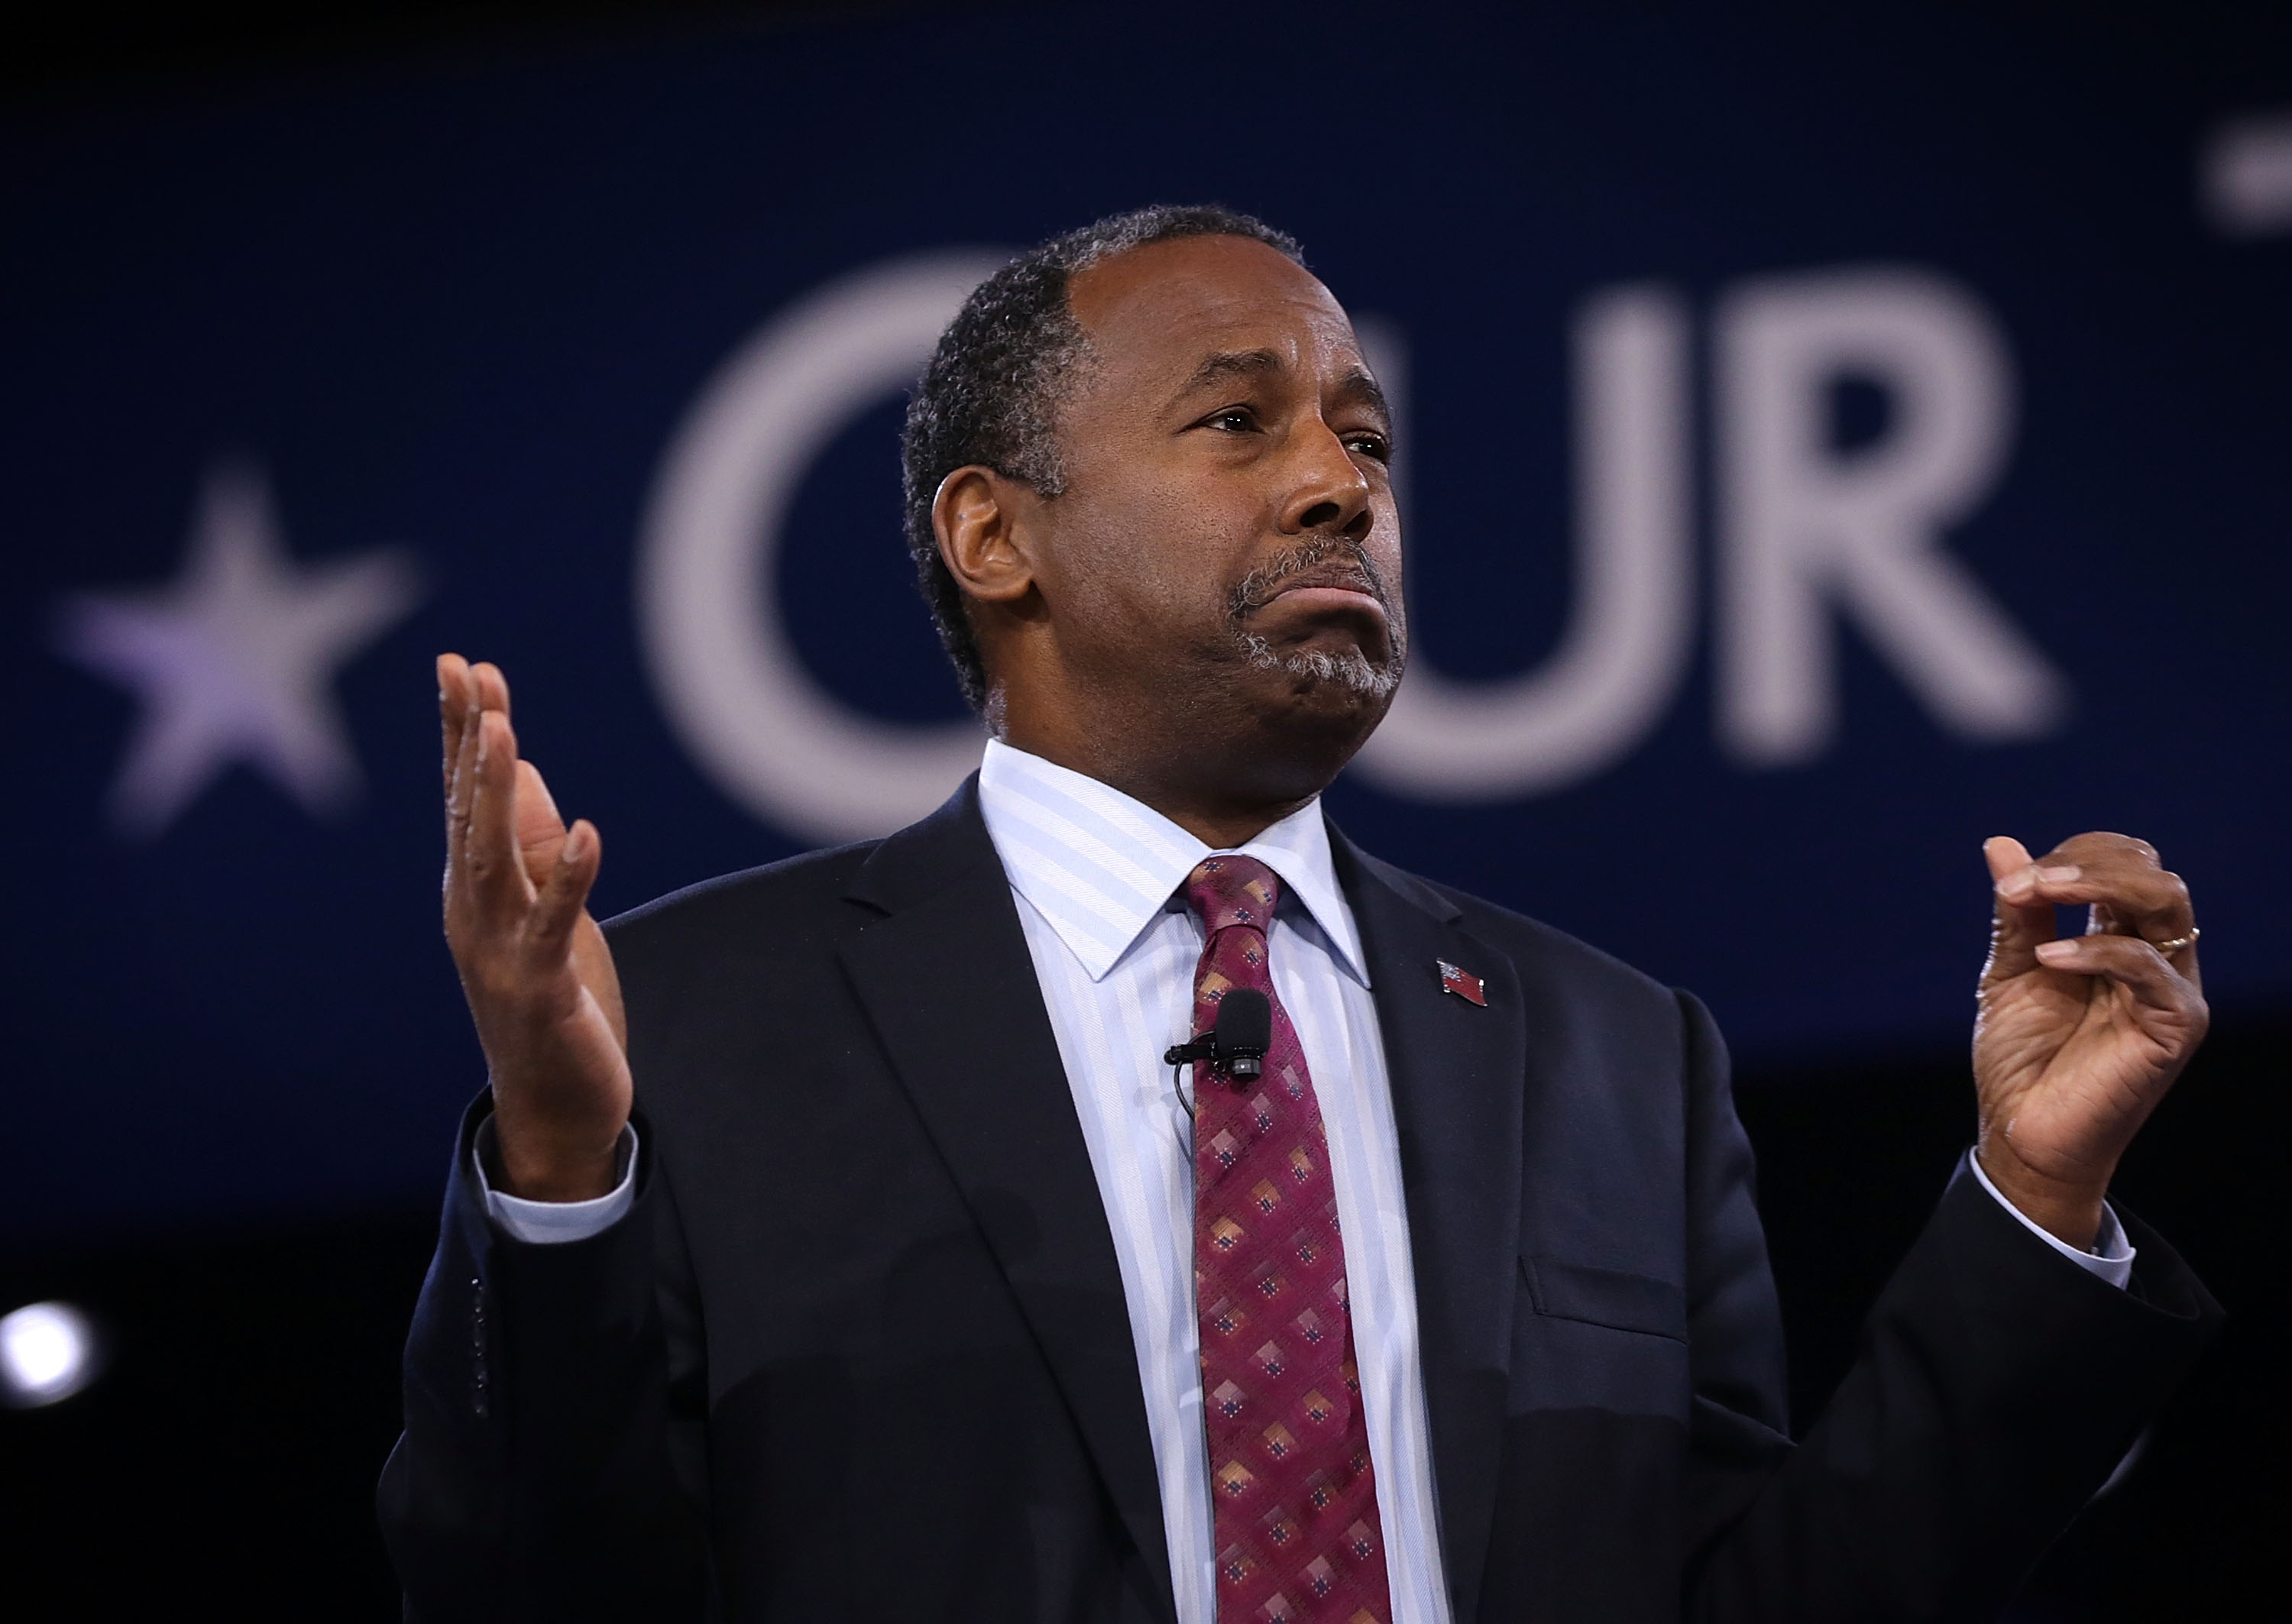 Republican presidential candidate Ben Carson speaks during CPAC 2016 March 5, 2016 in National Harbor, Maryland. Carson said he is dropping out of the presidential race.